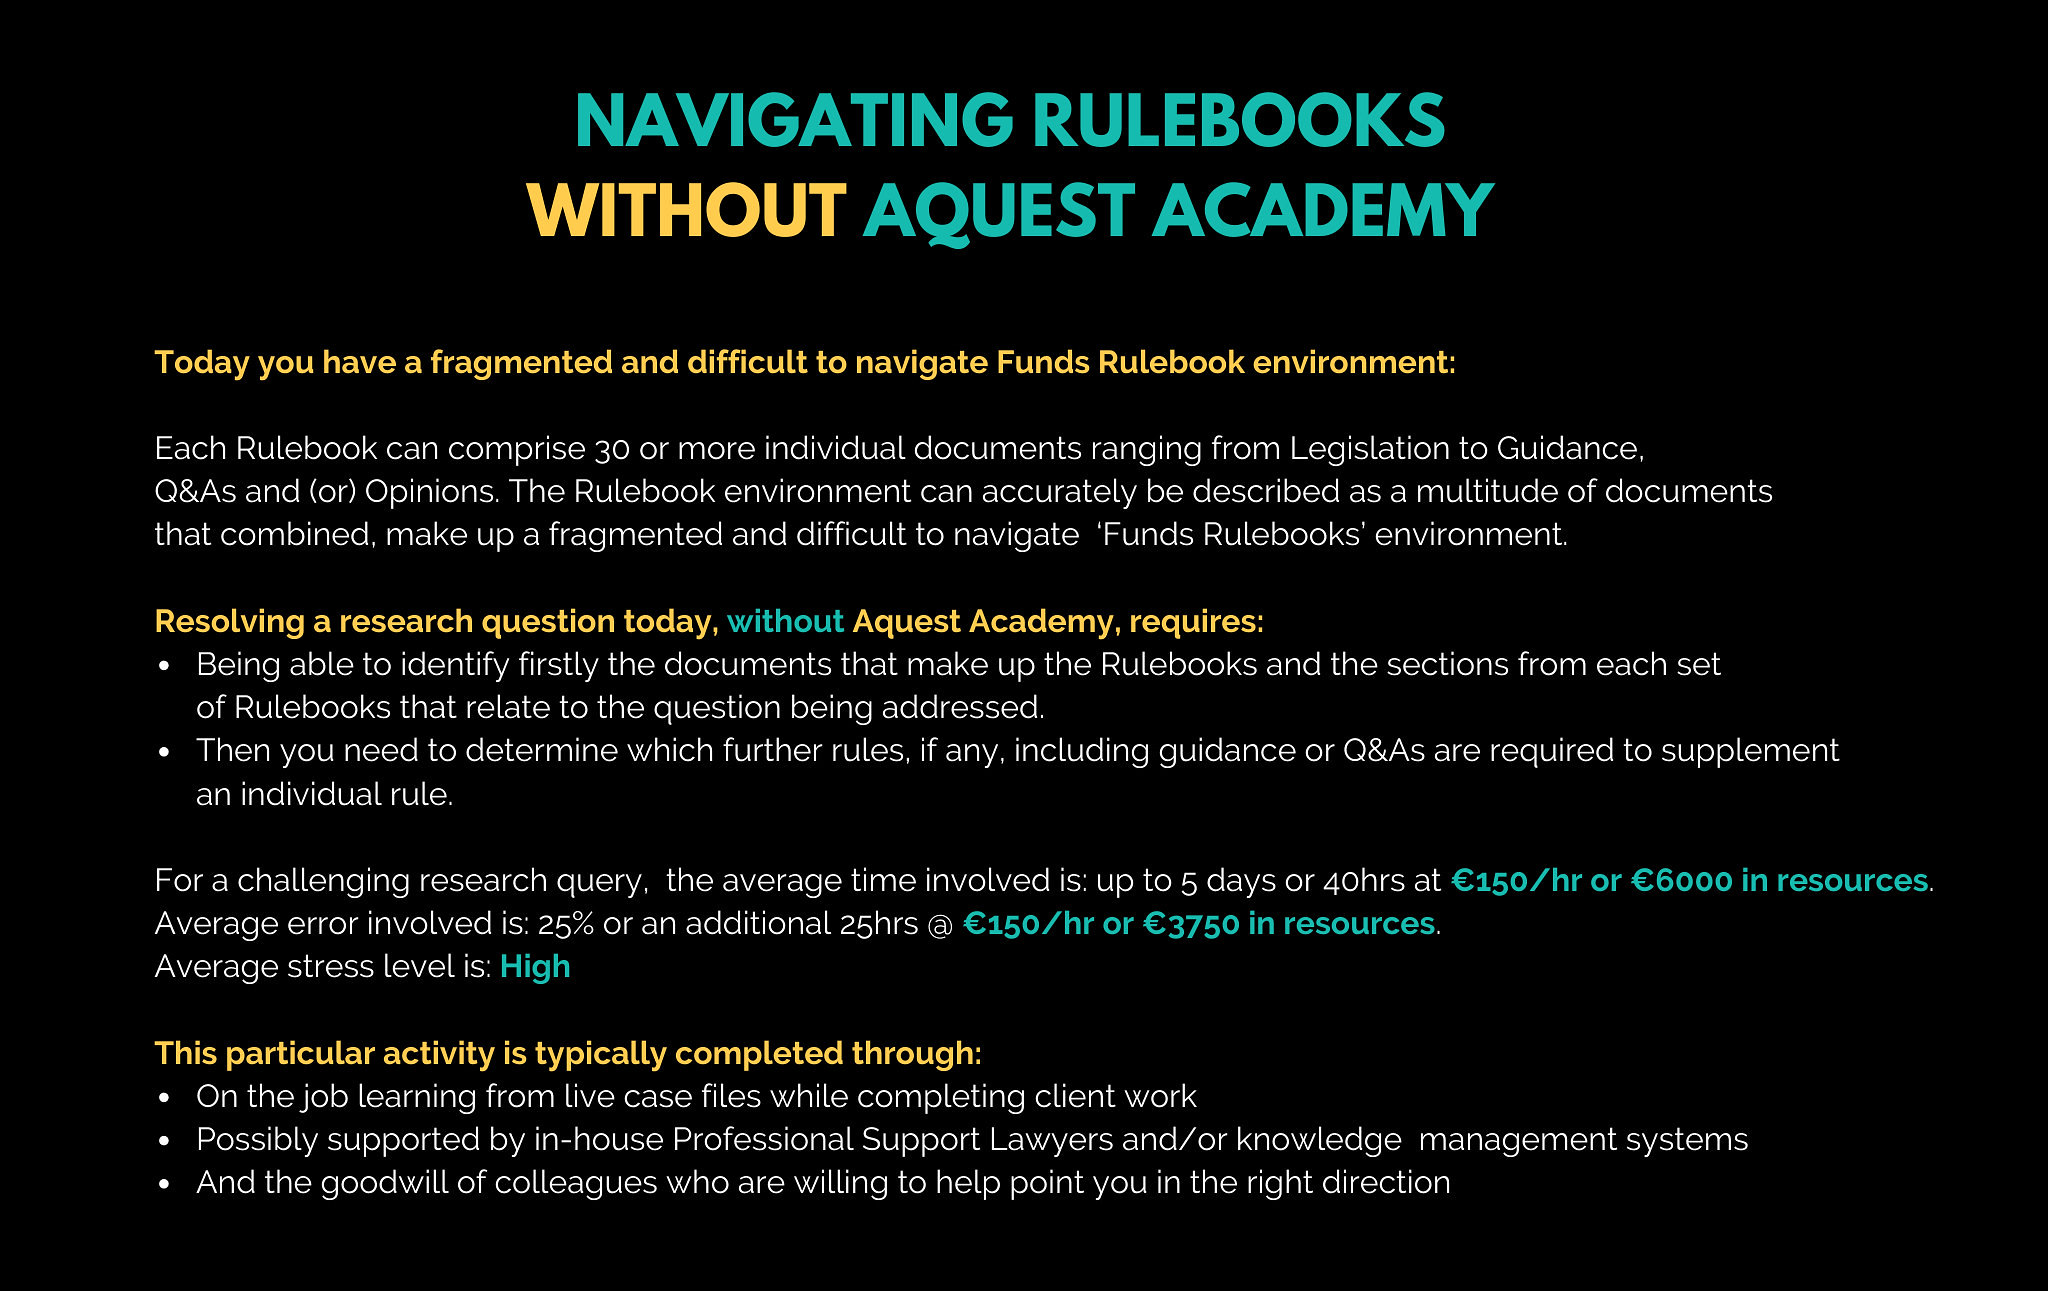 navigating rulebooks without aquest academy